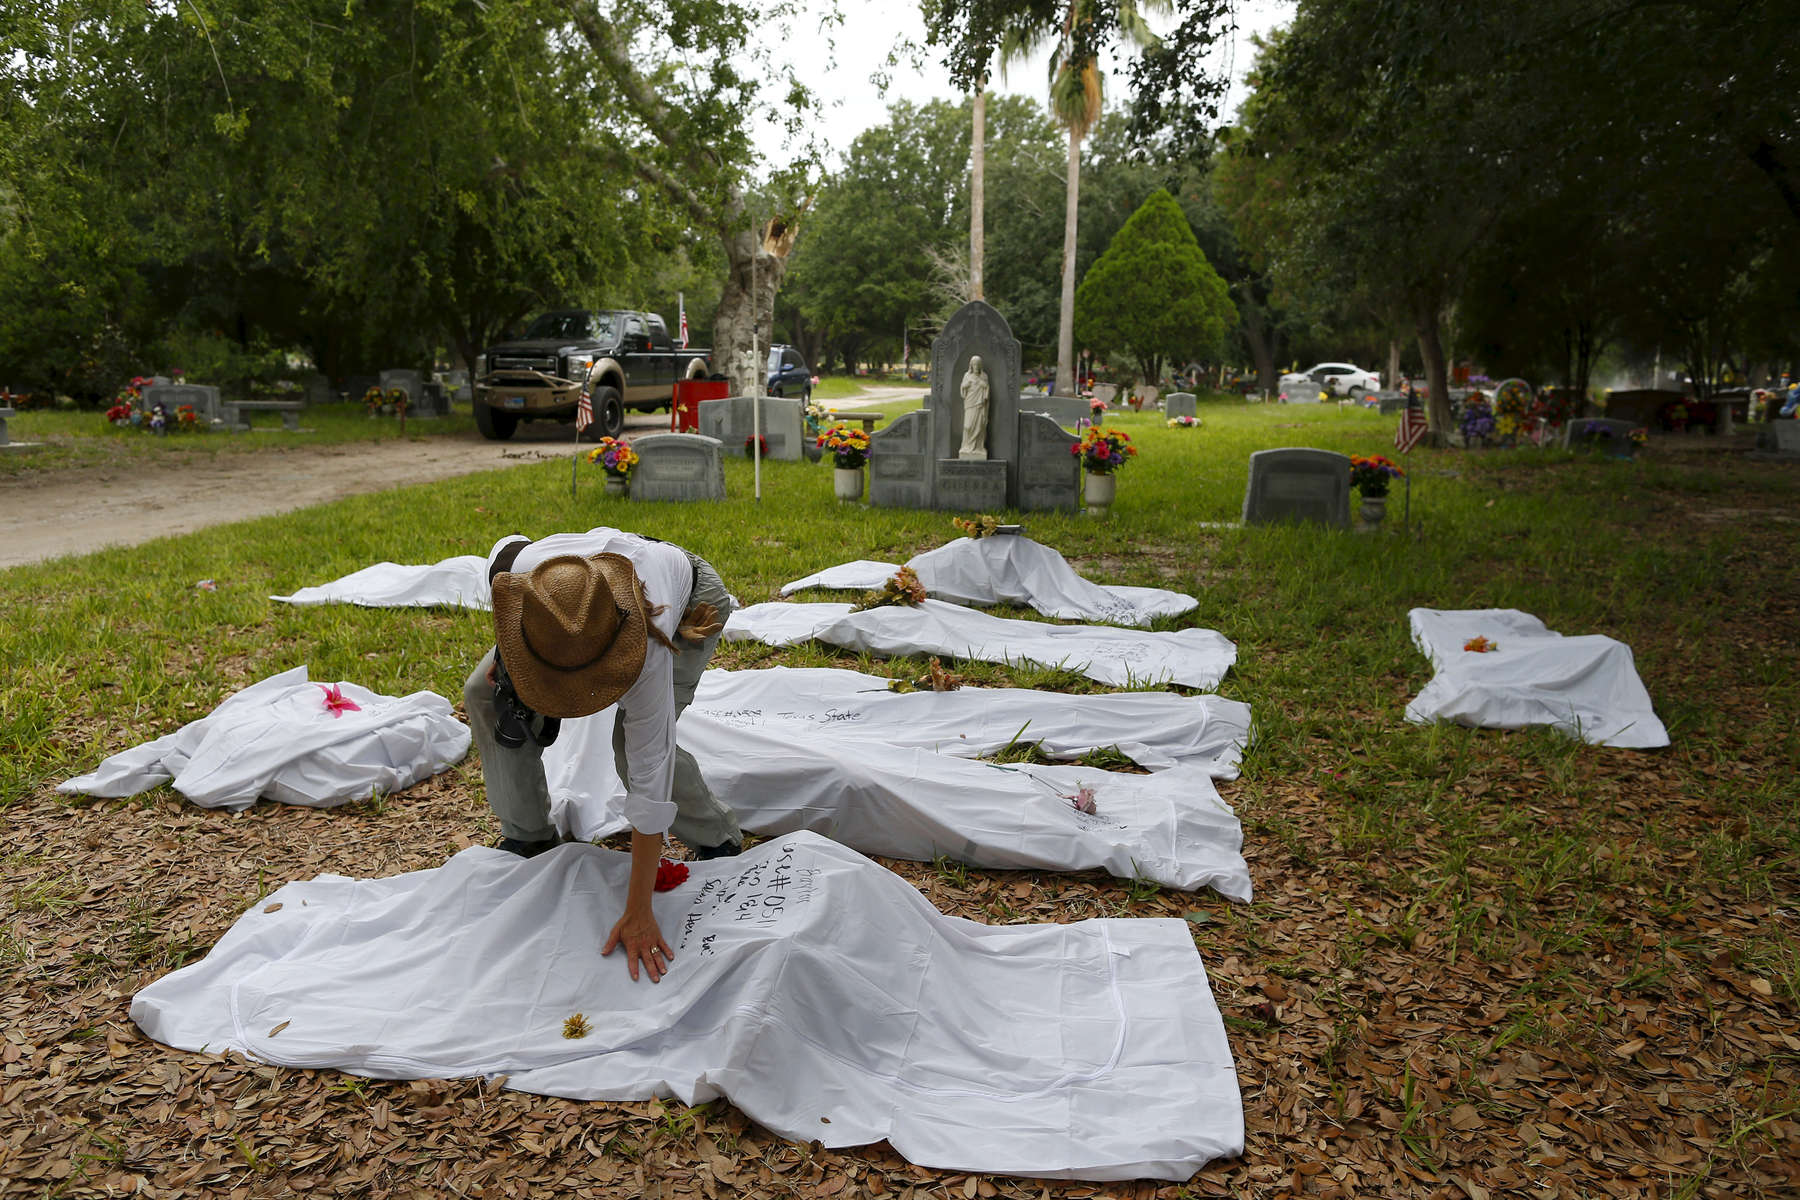 Lori E. Baker, Ph.D. places her hand on one of the eight body bags that members of the Baylor forensics team exhumed from a pauper\'s grave in Falfurrias, Texas June 10, 2014.